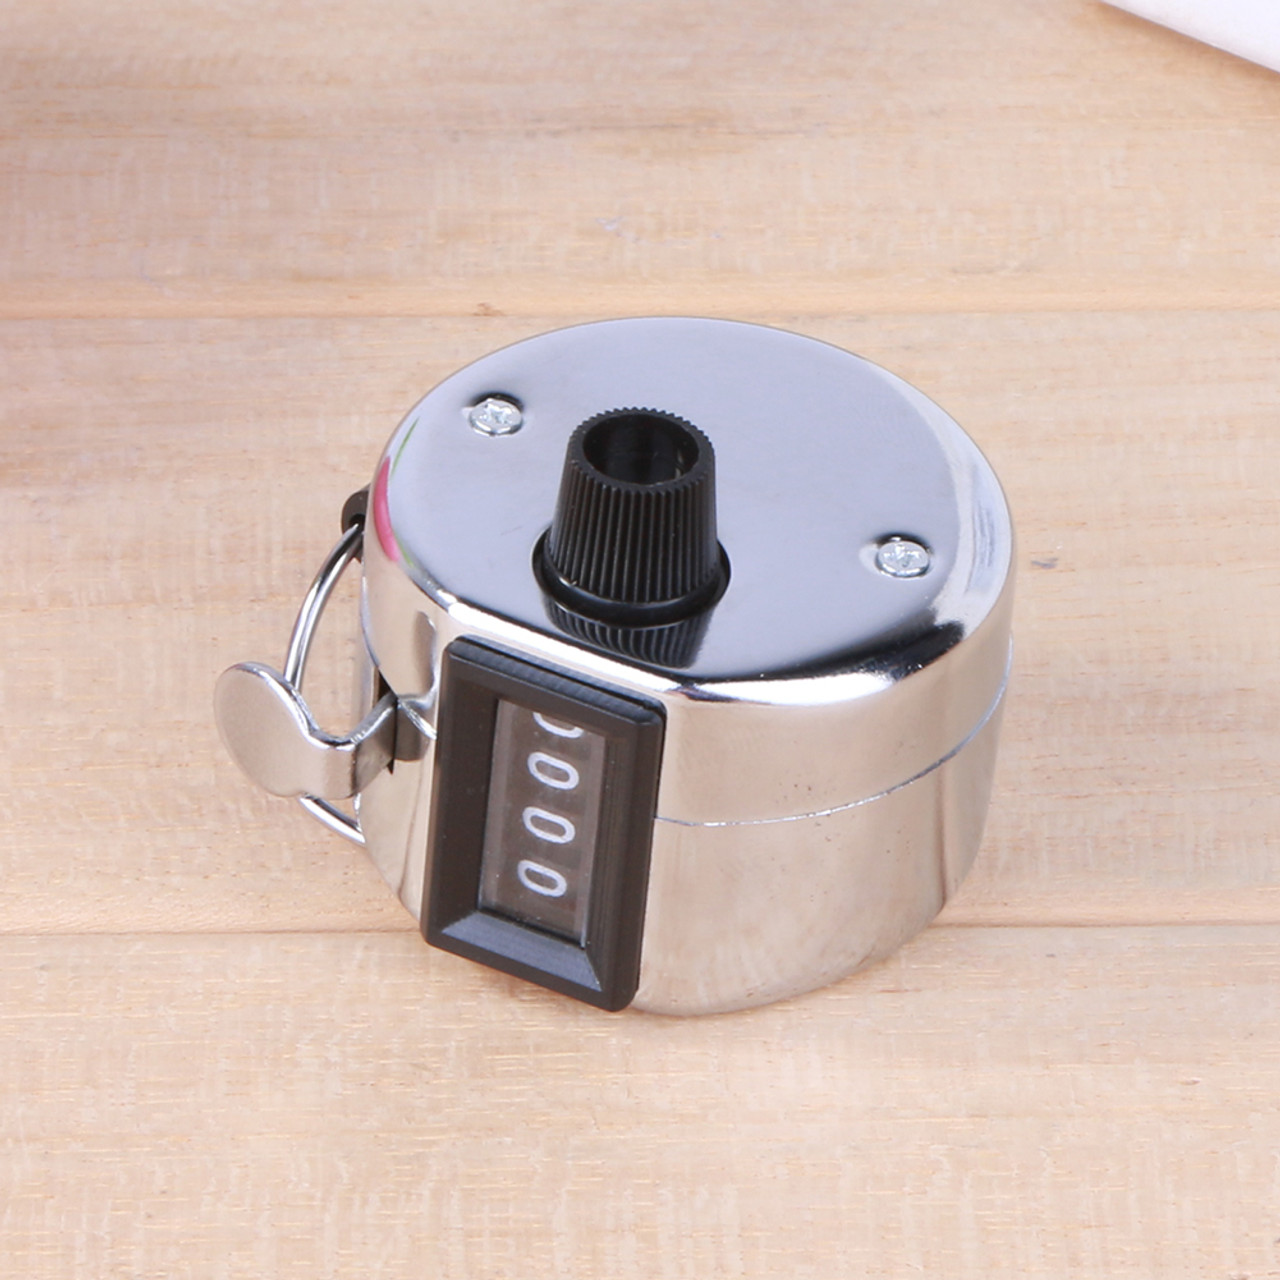 Side view of JQ14 Tally Counter